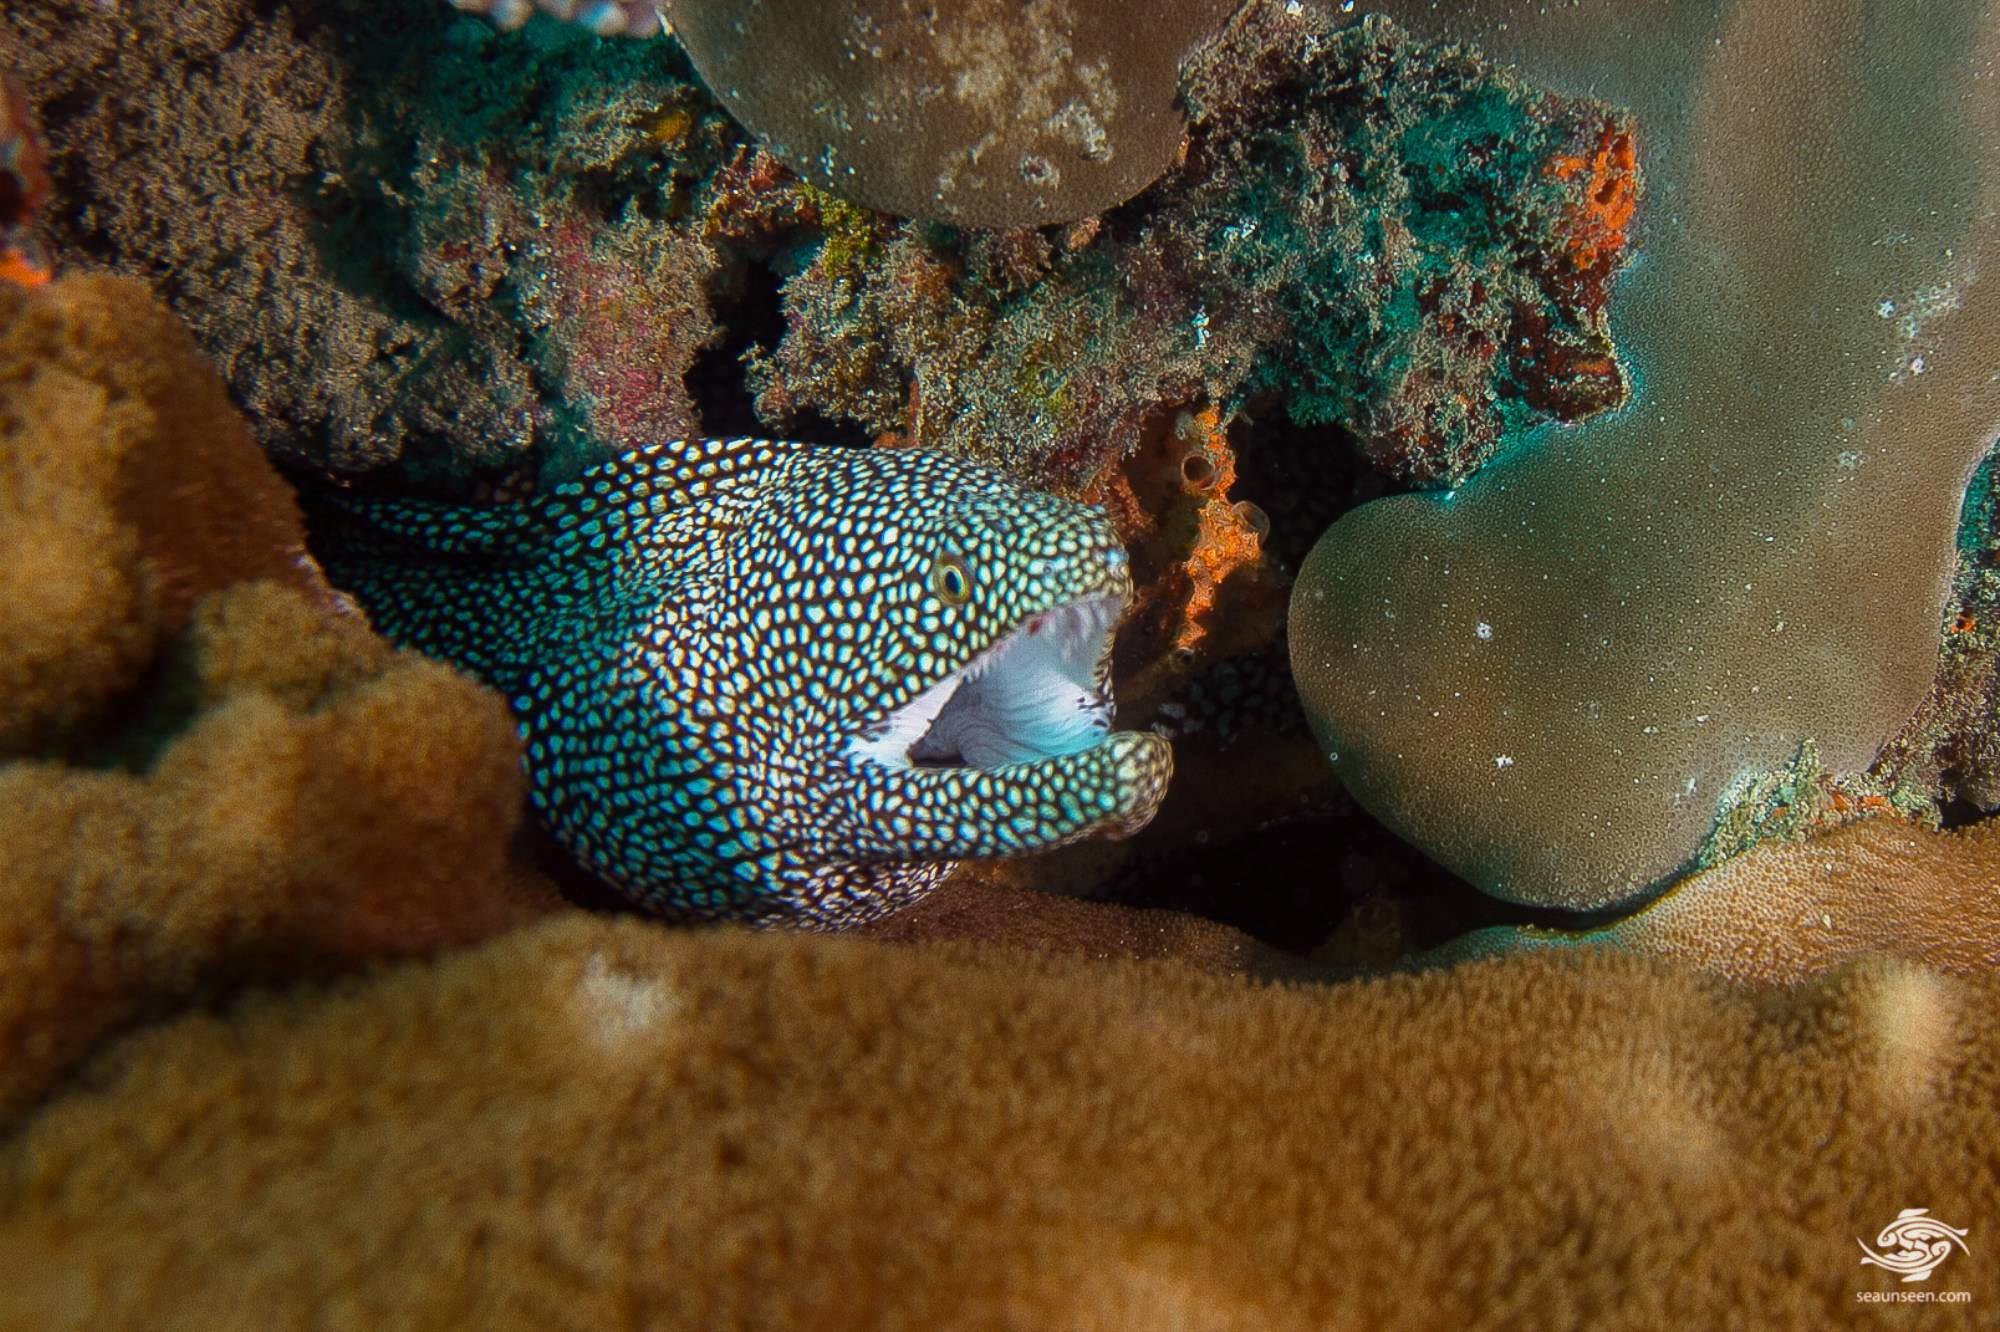 white-mouth moray eel (Gymnothorax Meleagris)  also known as the comet moray eel or  guinea fowl moray eel